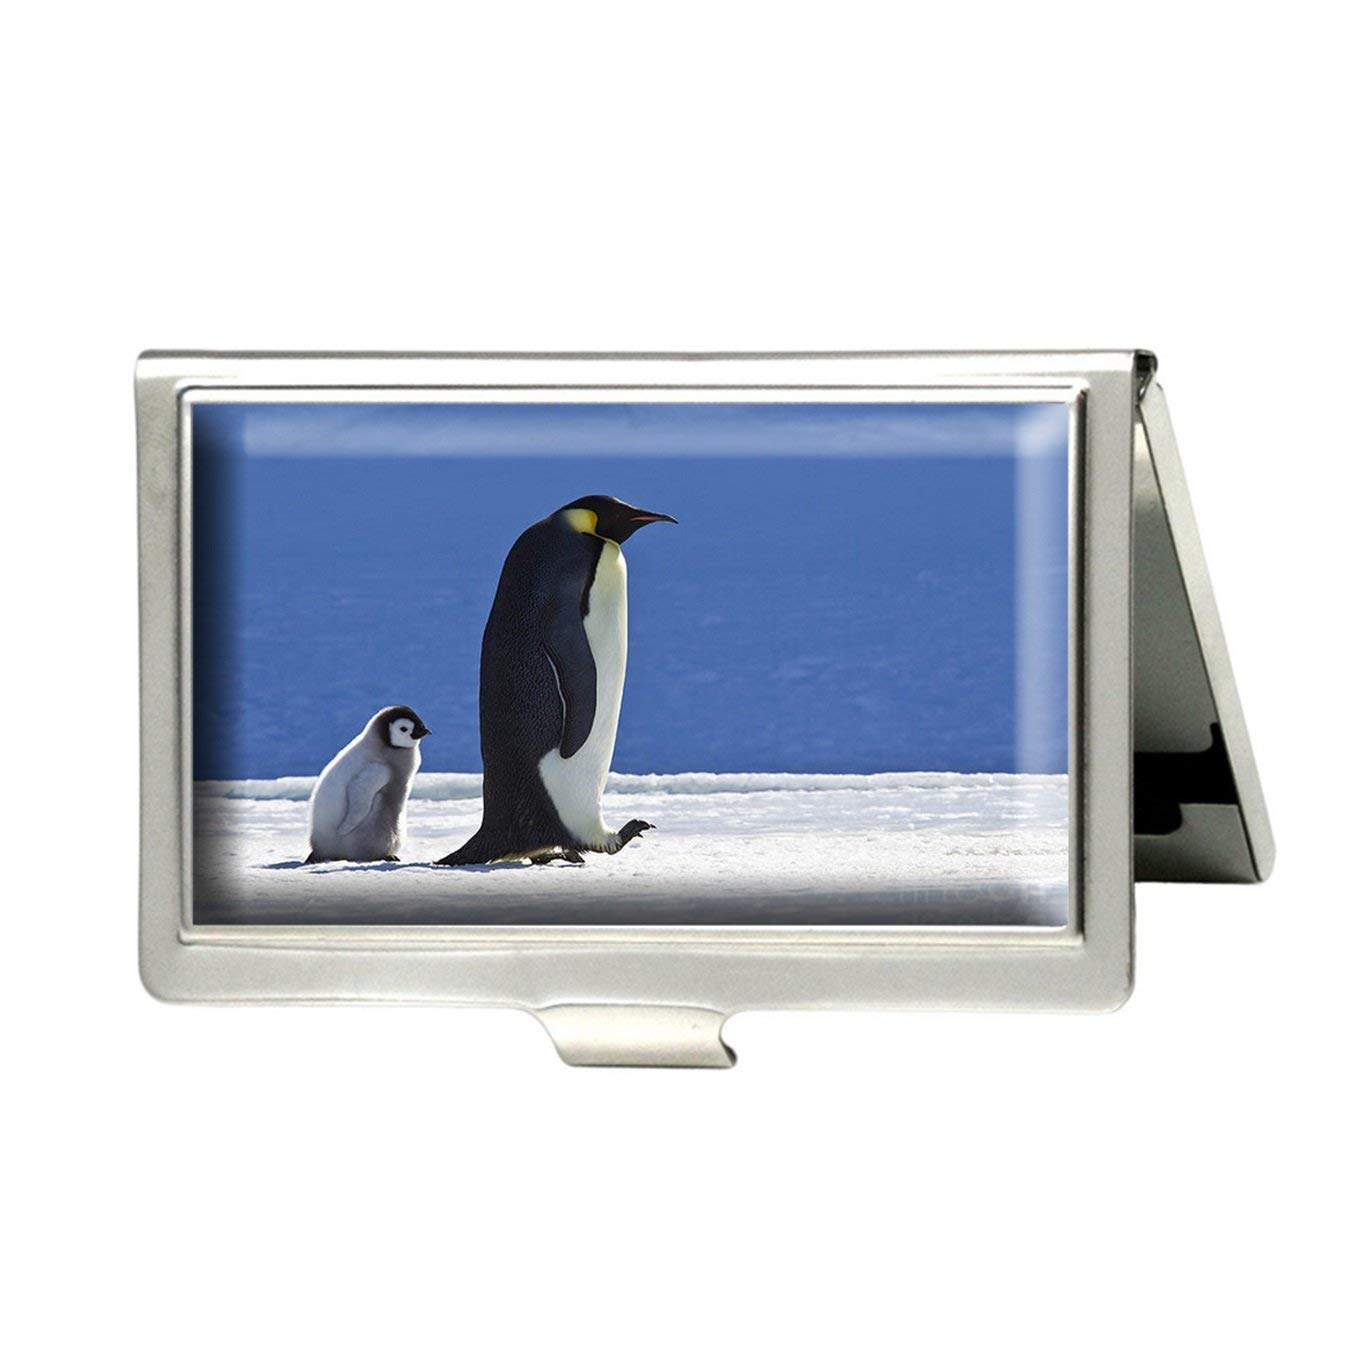 Caikem Emperor Penguin And Chick Custom Personalized Stainless Steel Silver Business Card Holder Pocket Business Name Credit Card ID Card Wallet